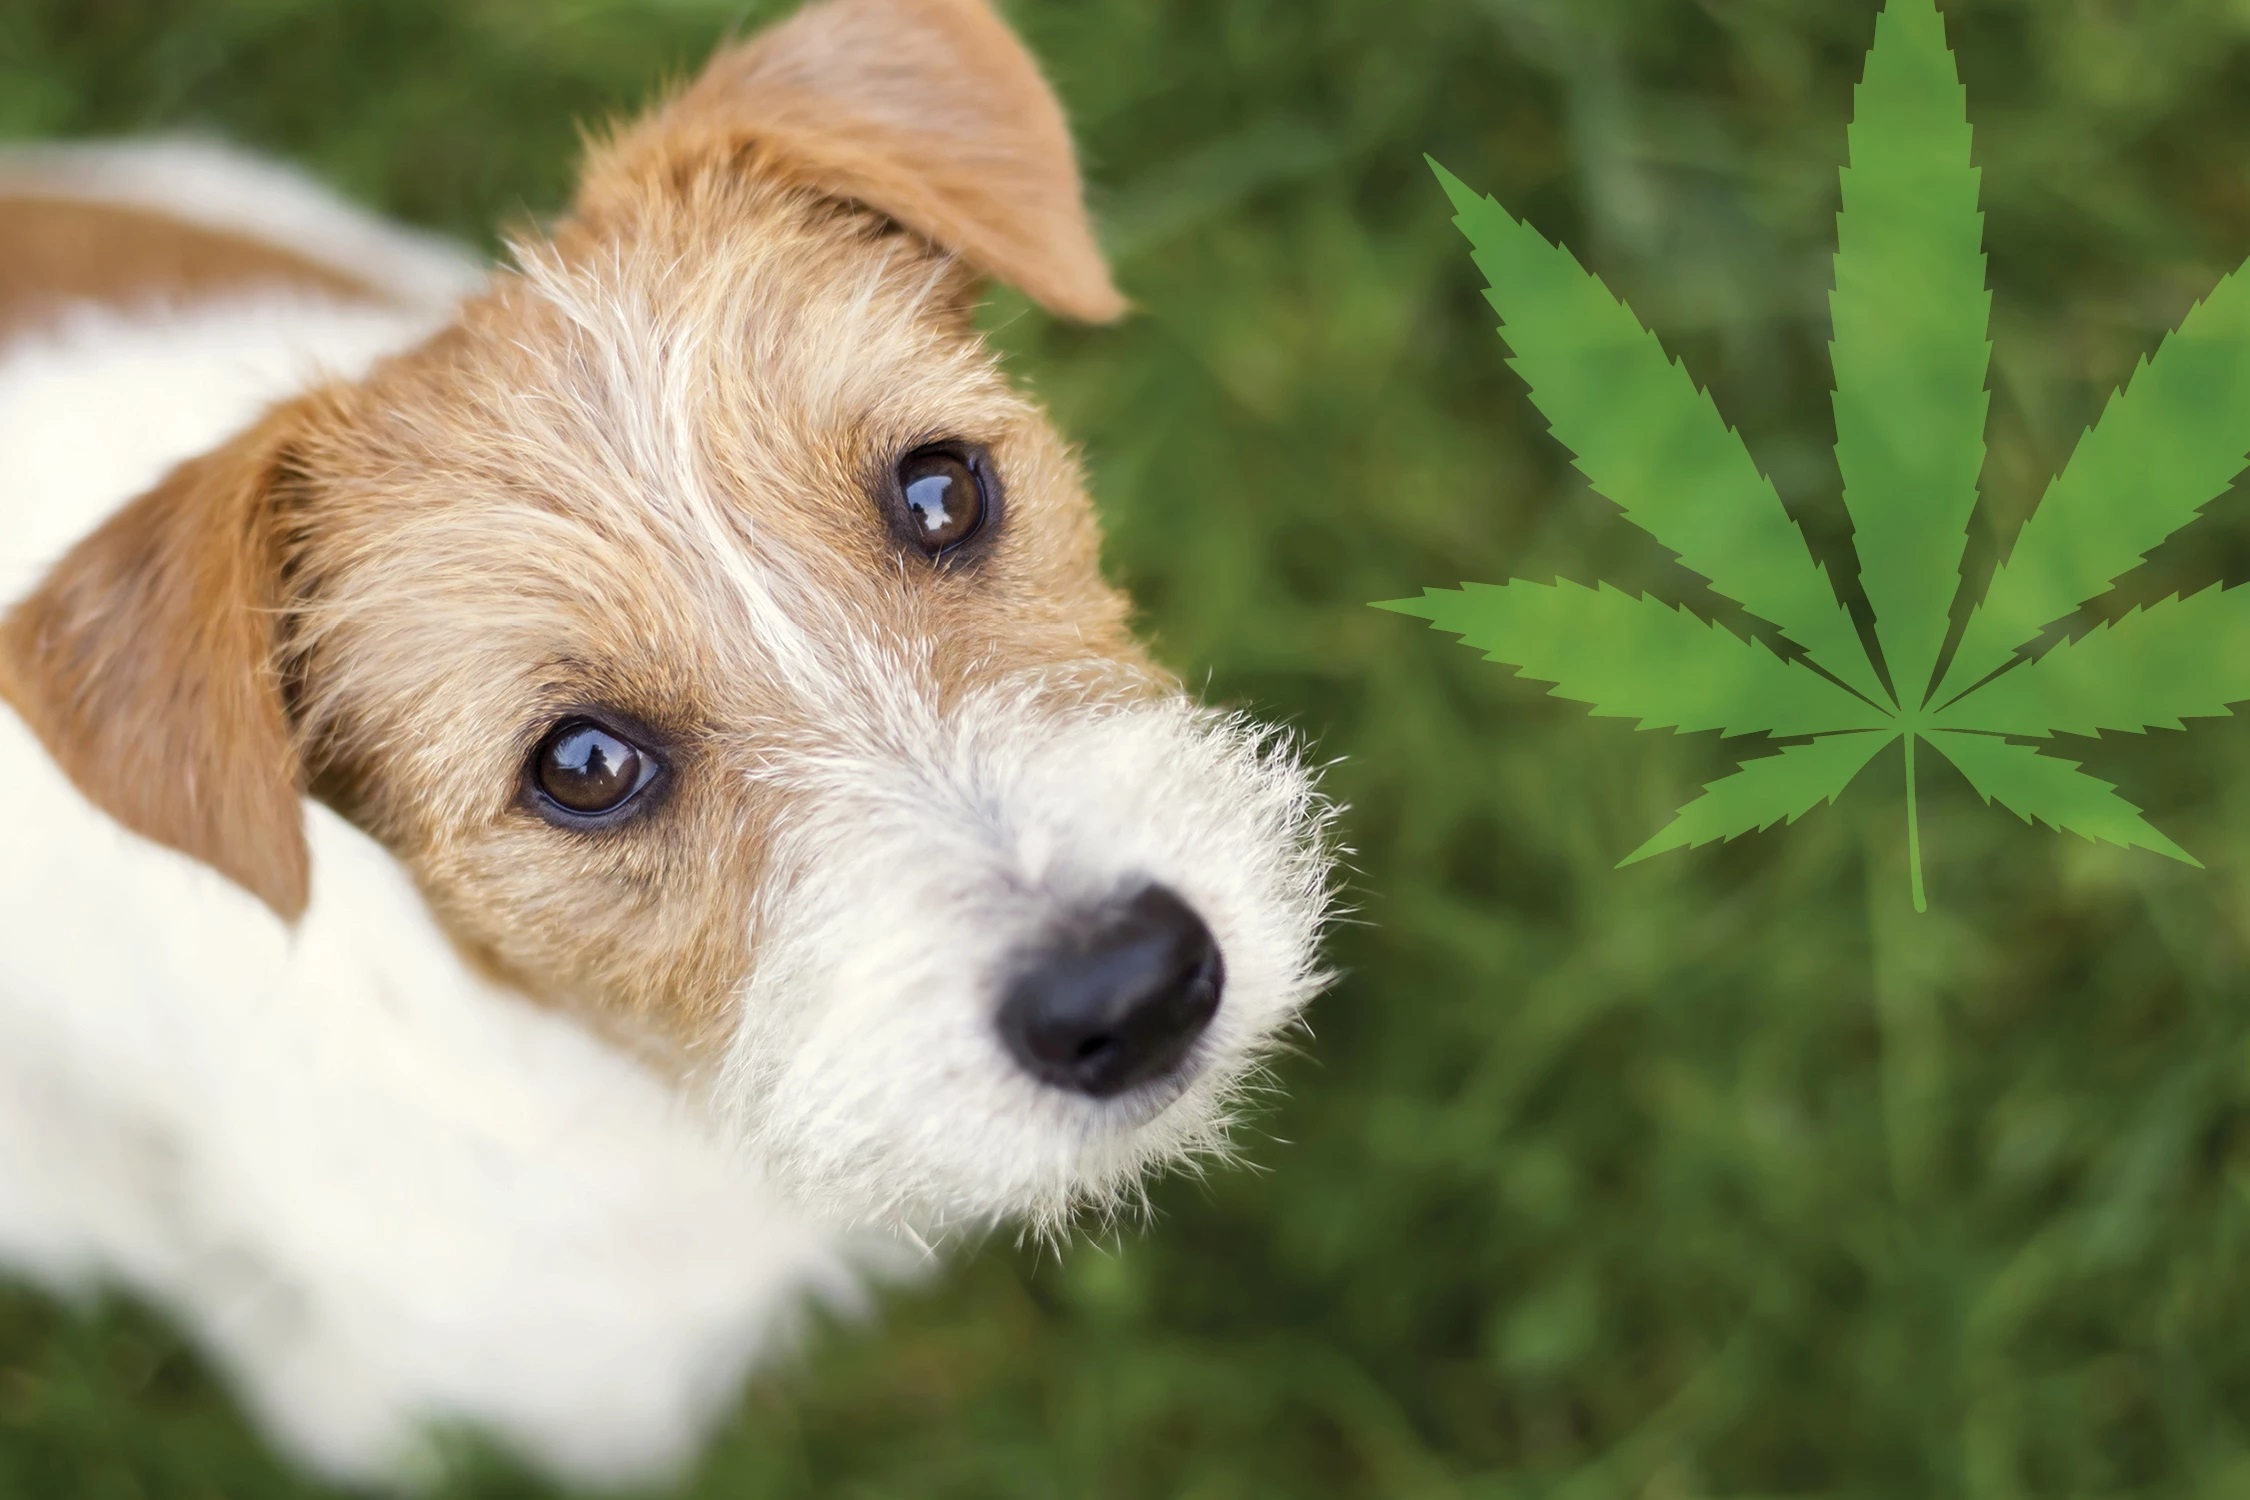 Hemp CBD Oil Can Boost Your Dog's Wellness